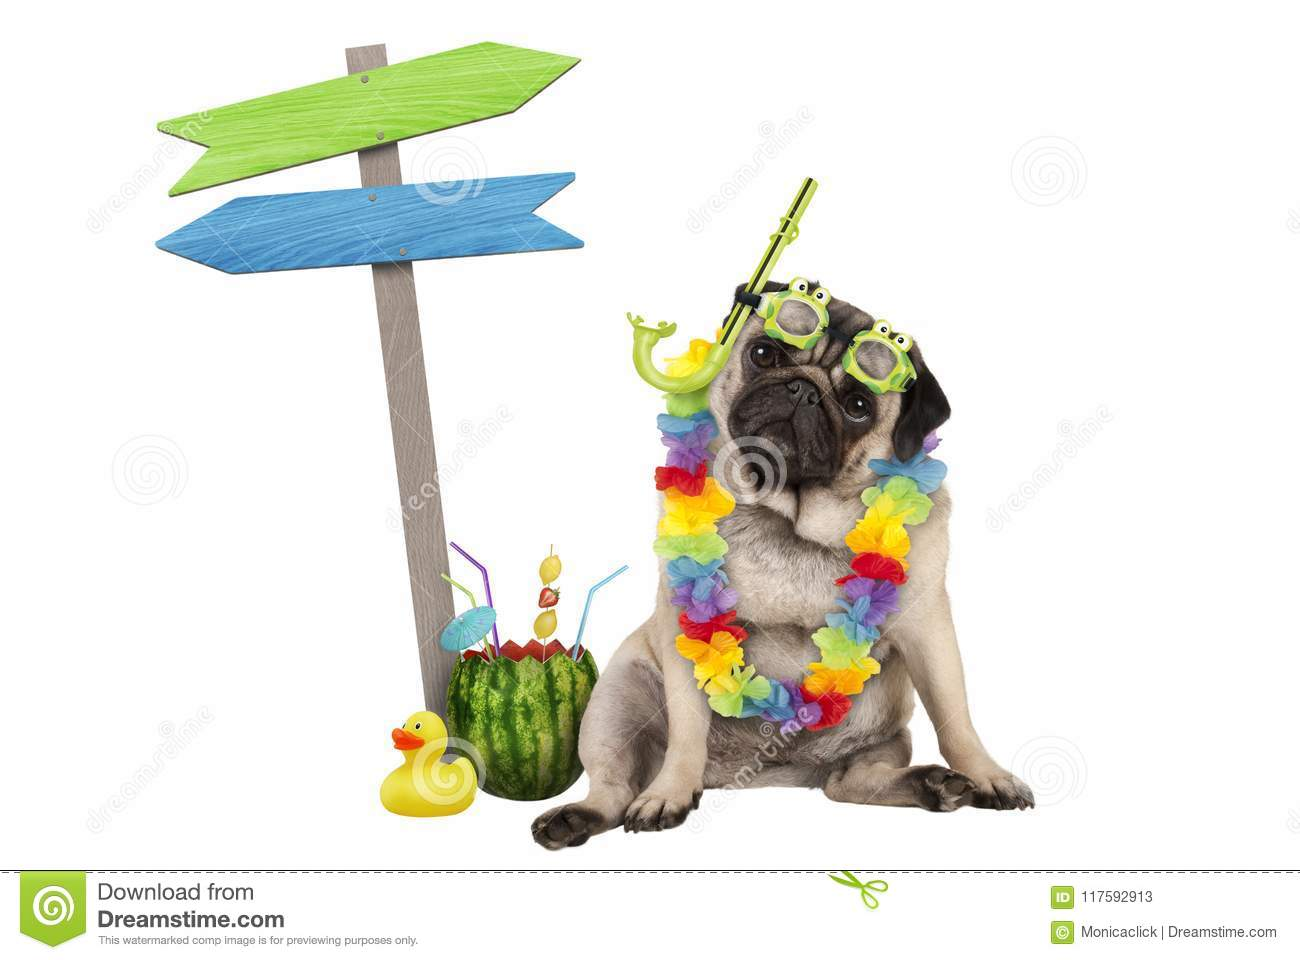 Cute Smart Pug Puppy Dog Sitting Down With Watermelon Cocktail